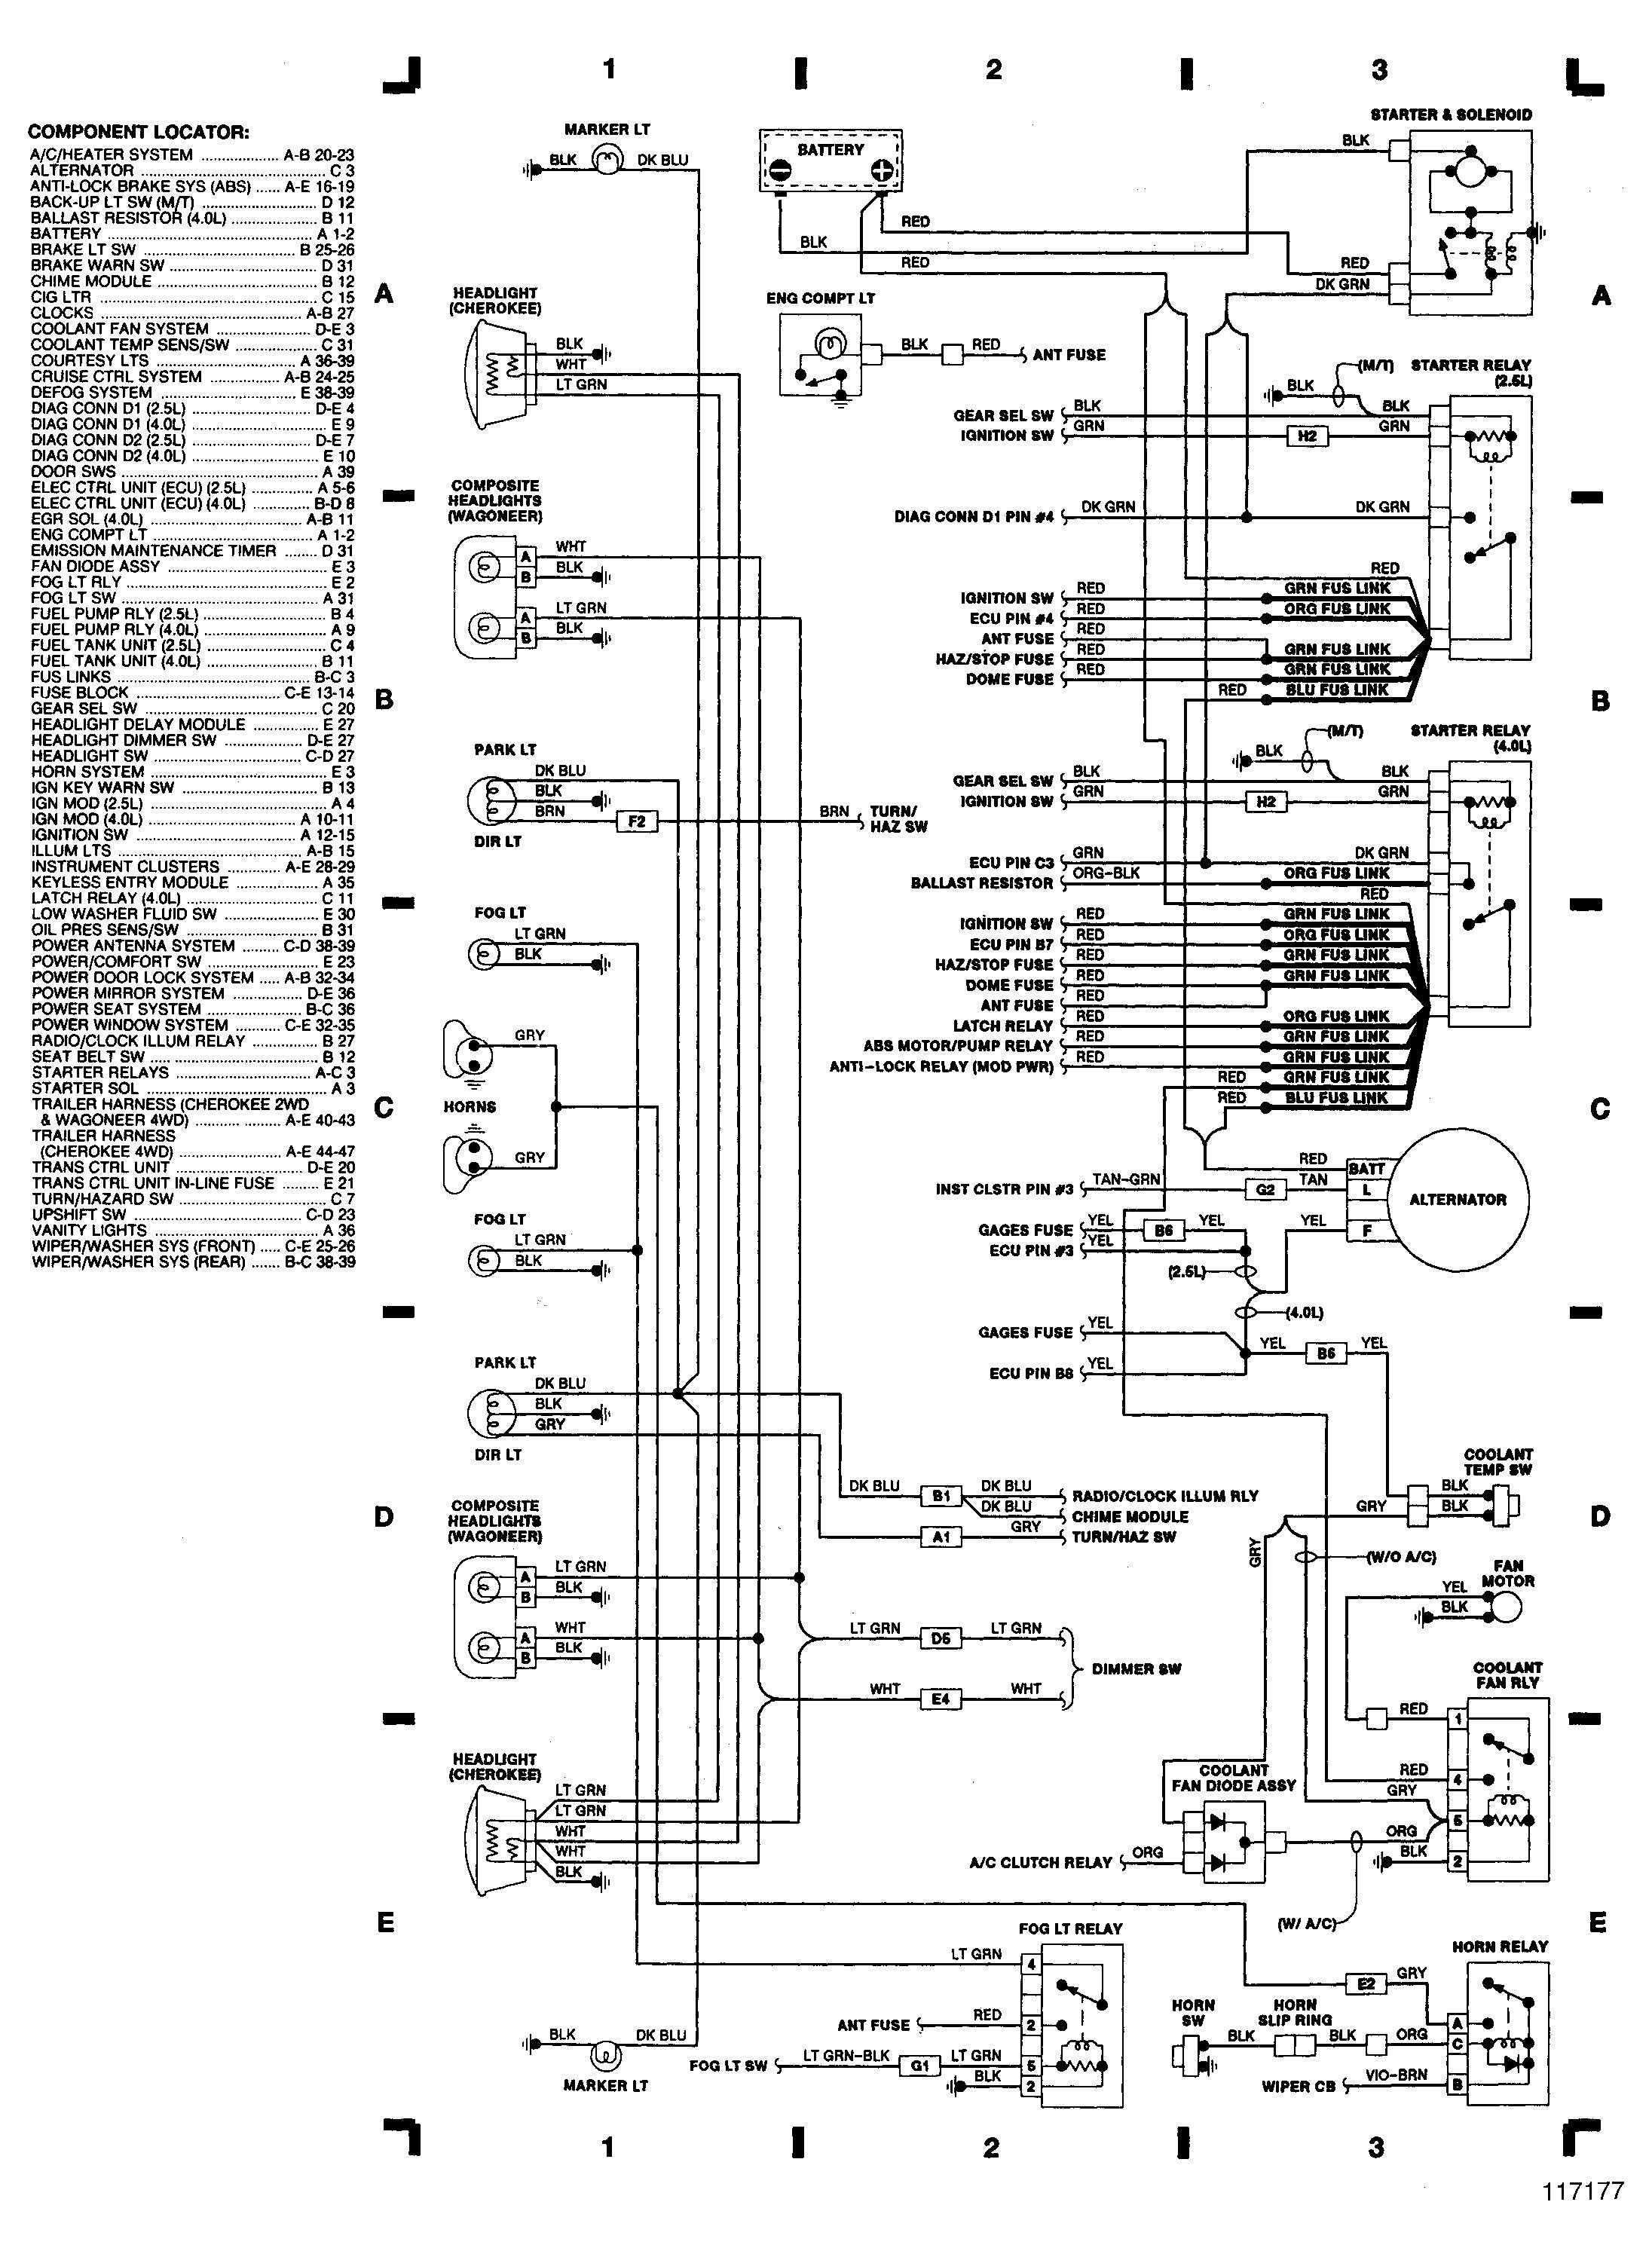 Awesome Wiring Diagram Jeep Grand Cherokee Diagrams Digramssample Diagramimages Wiringdiagramsample Wiringdiagram Jeep Grand Cherokee Jeep Cherokee Jeep